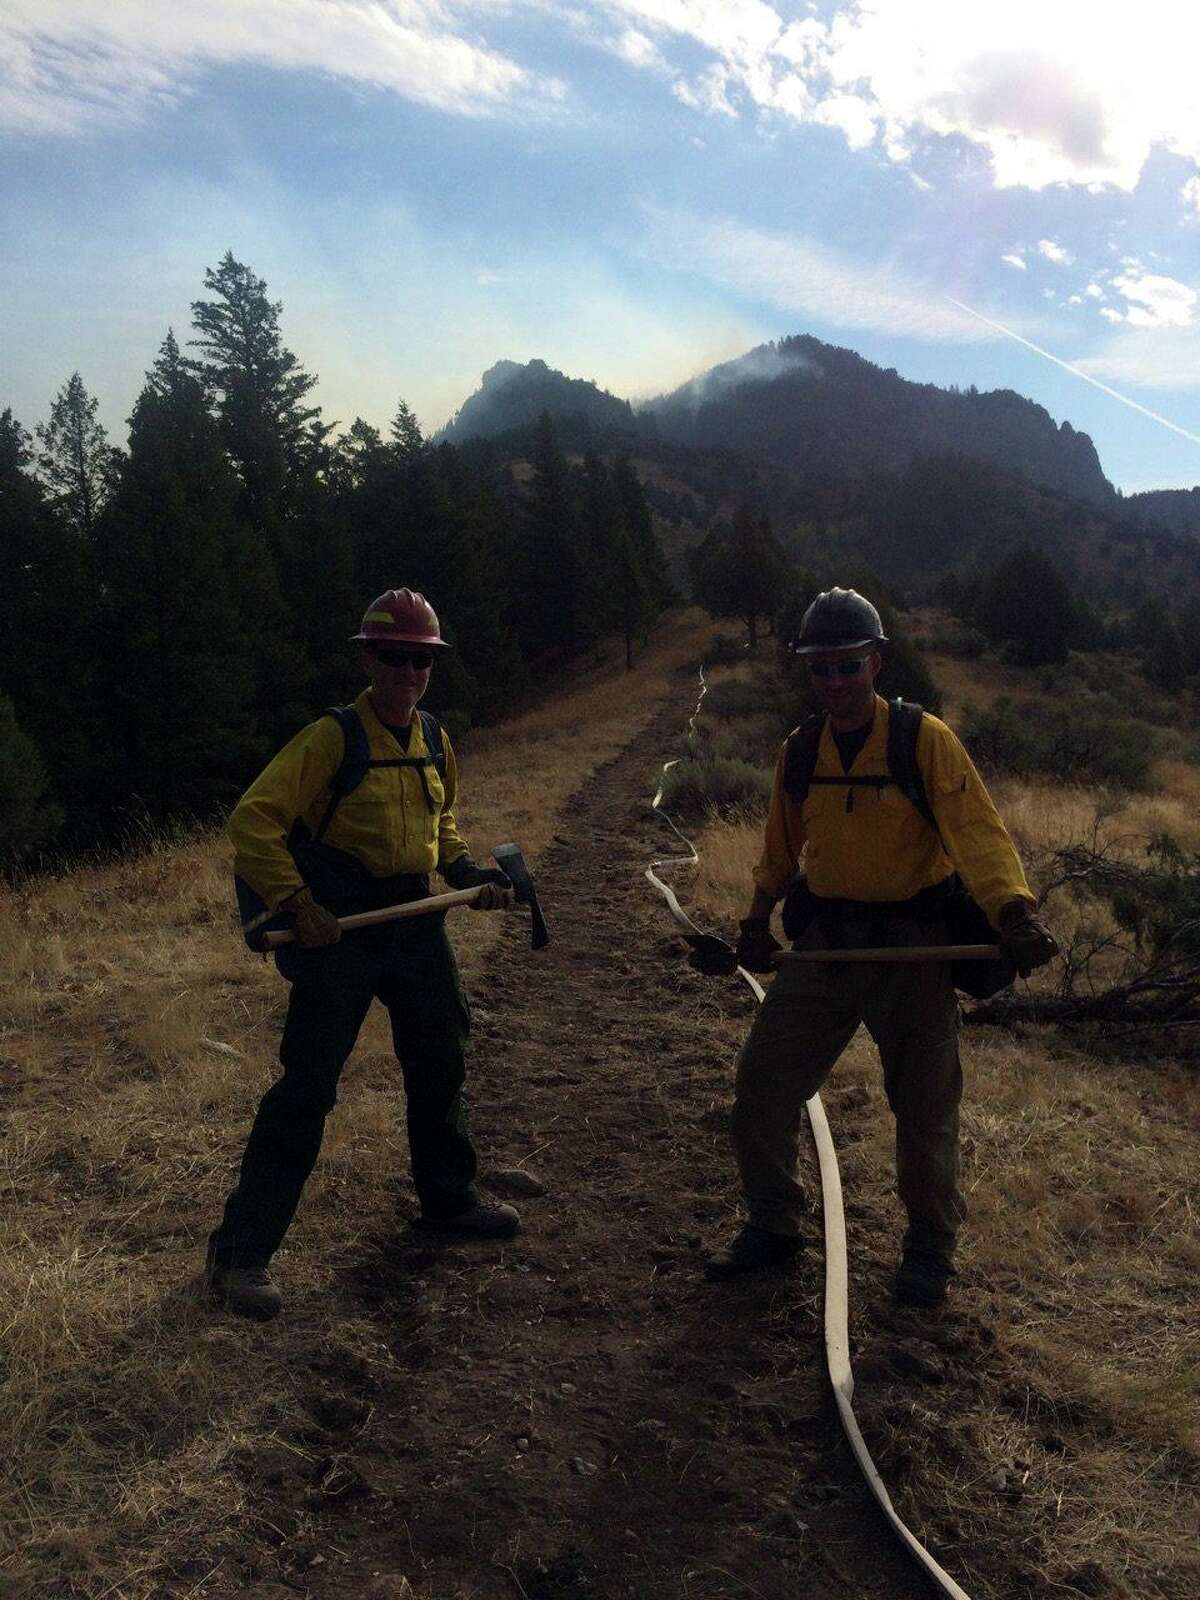 Wsetport Fire Chief Robert Yost, left, and Westport Fire Deputy Chief Mike Kronick, right, have used their experience combating wildfires to handle the coronavirus pandemic.